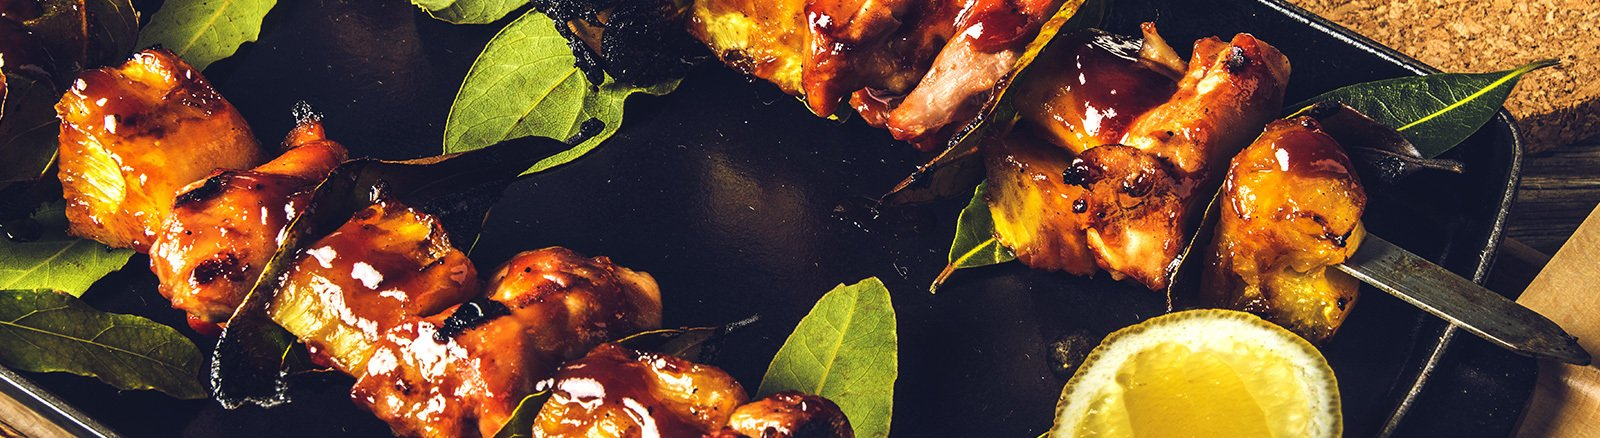 BBQ Chicken and Pineapple Skewers thumbnail